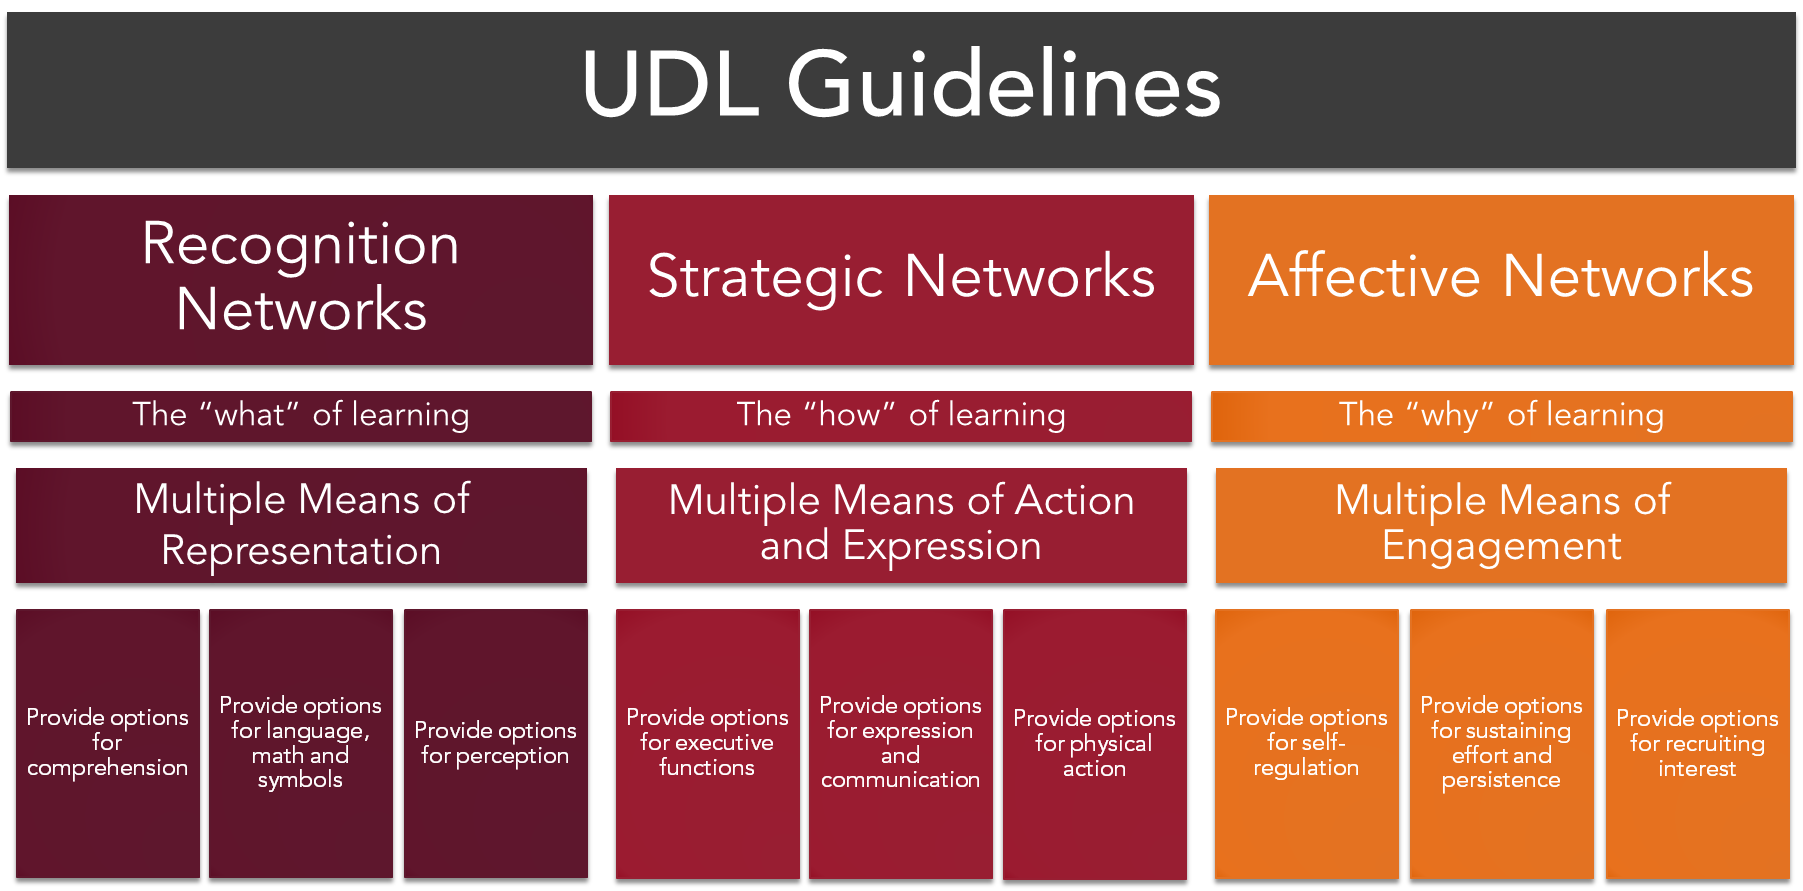 UDL Guidelines - Access the link below the graphic for a description.